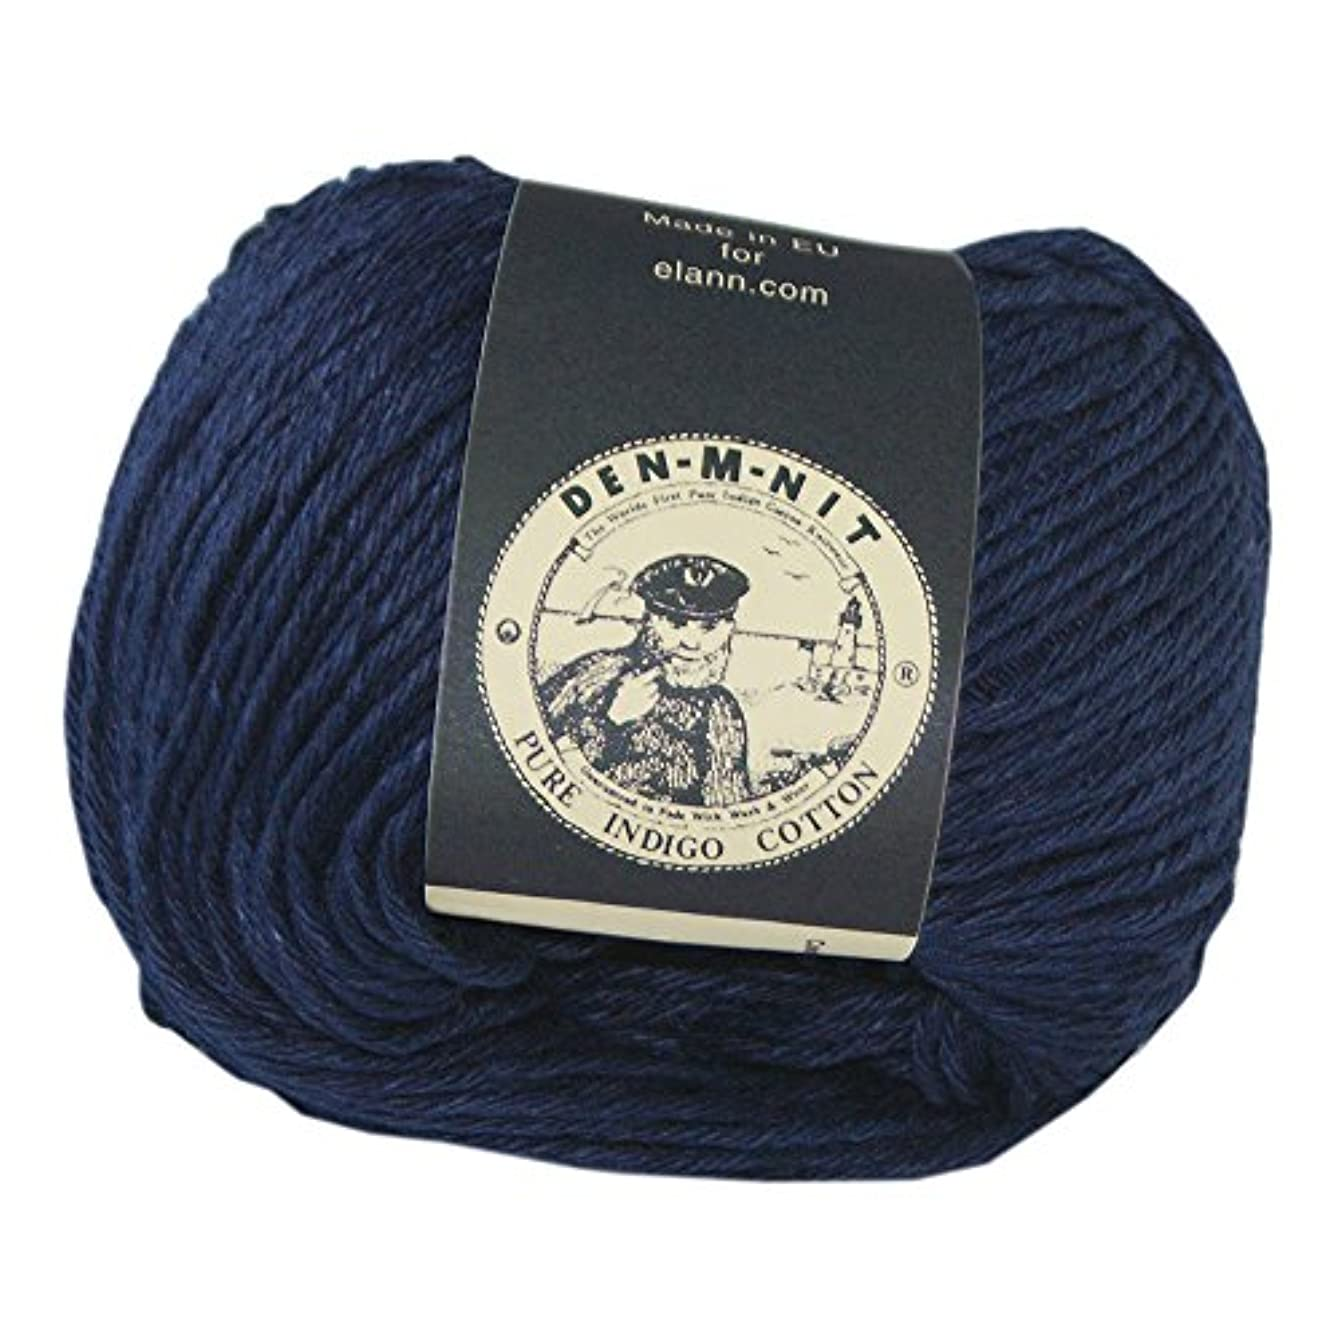 elann Den-M-Nit Yarn | 10 Ball Bag | Dark Indigo